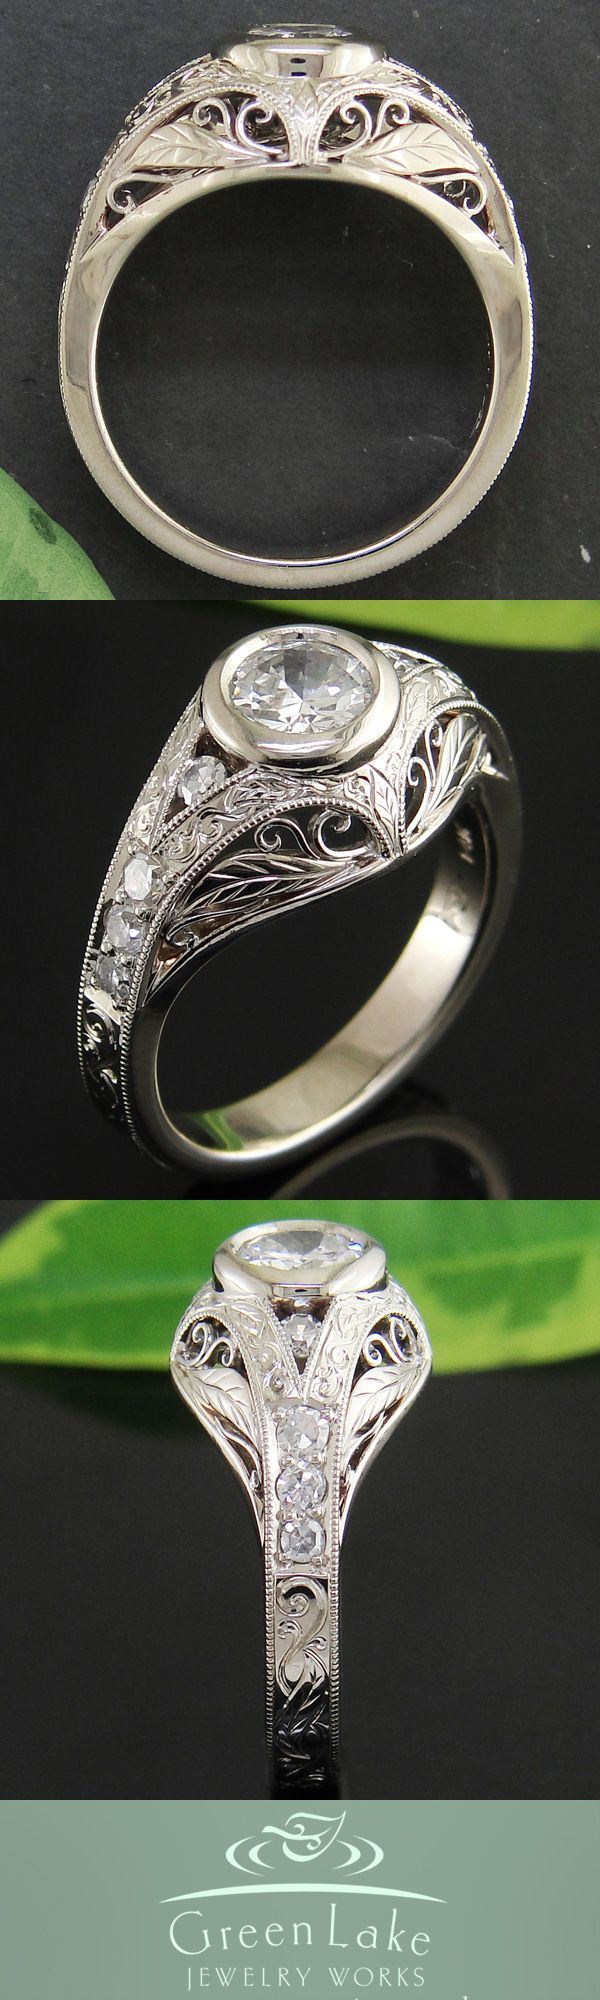 White Gold And Diamond Engagement Ring With Old World Filigree Engagement  Jewellerydiamond Engagement Ringsfiligree Ringfiligree Designyoga